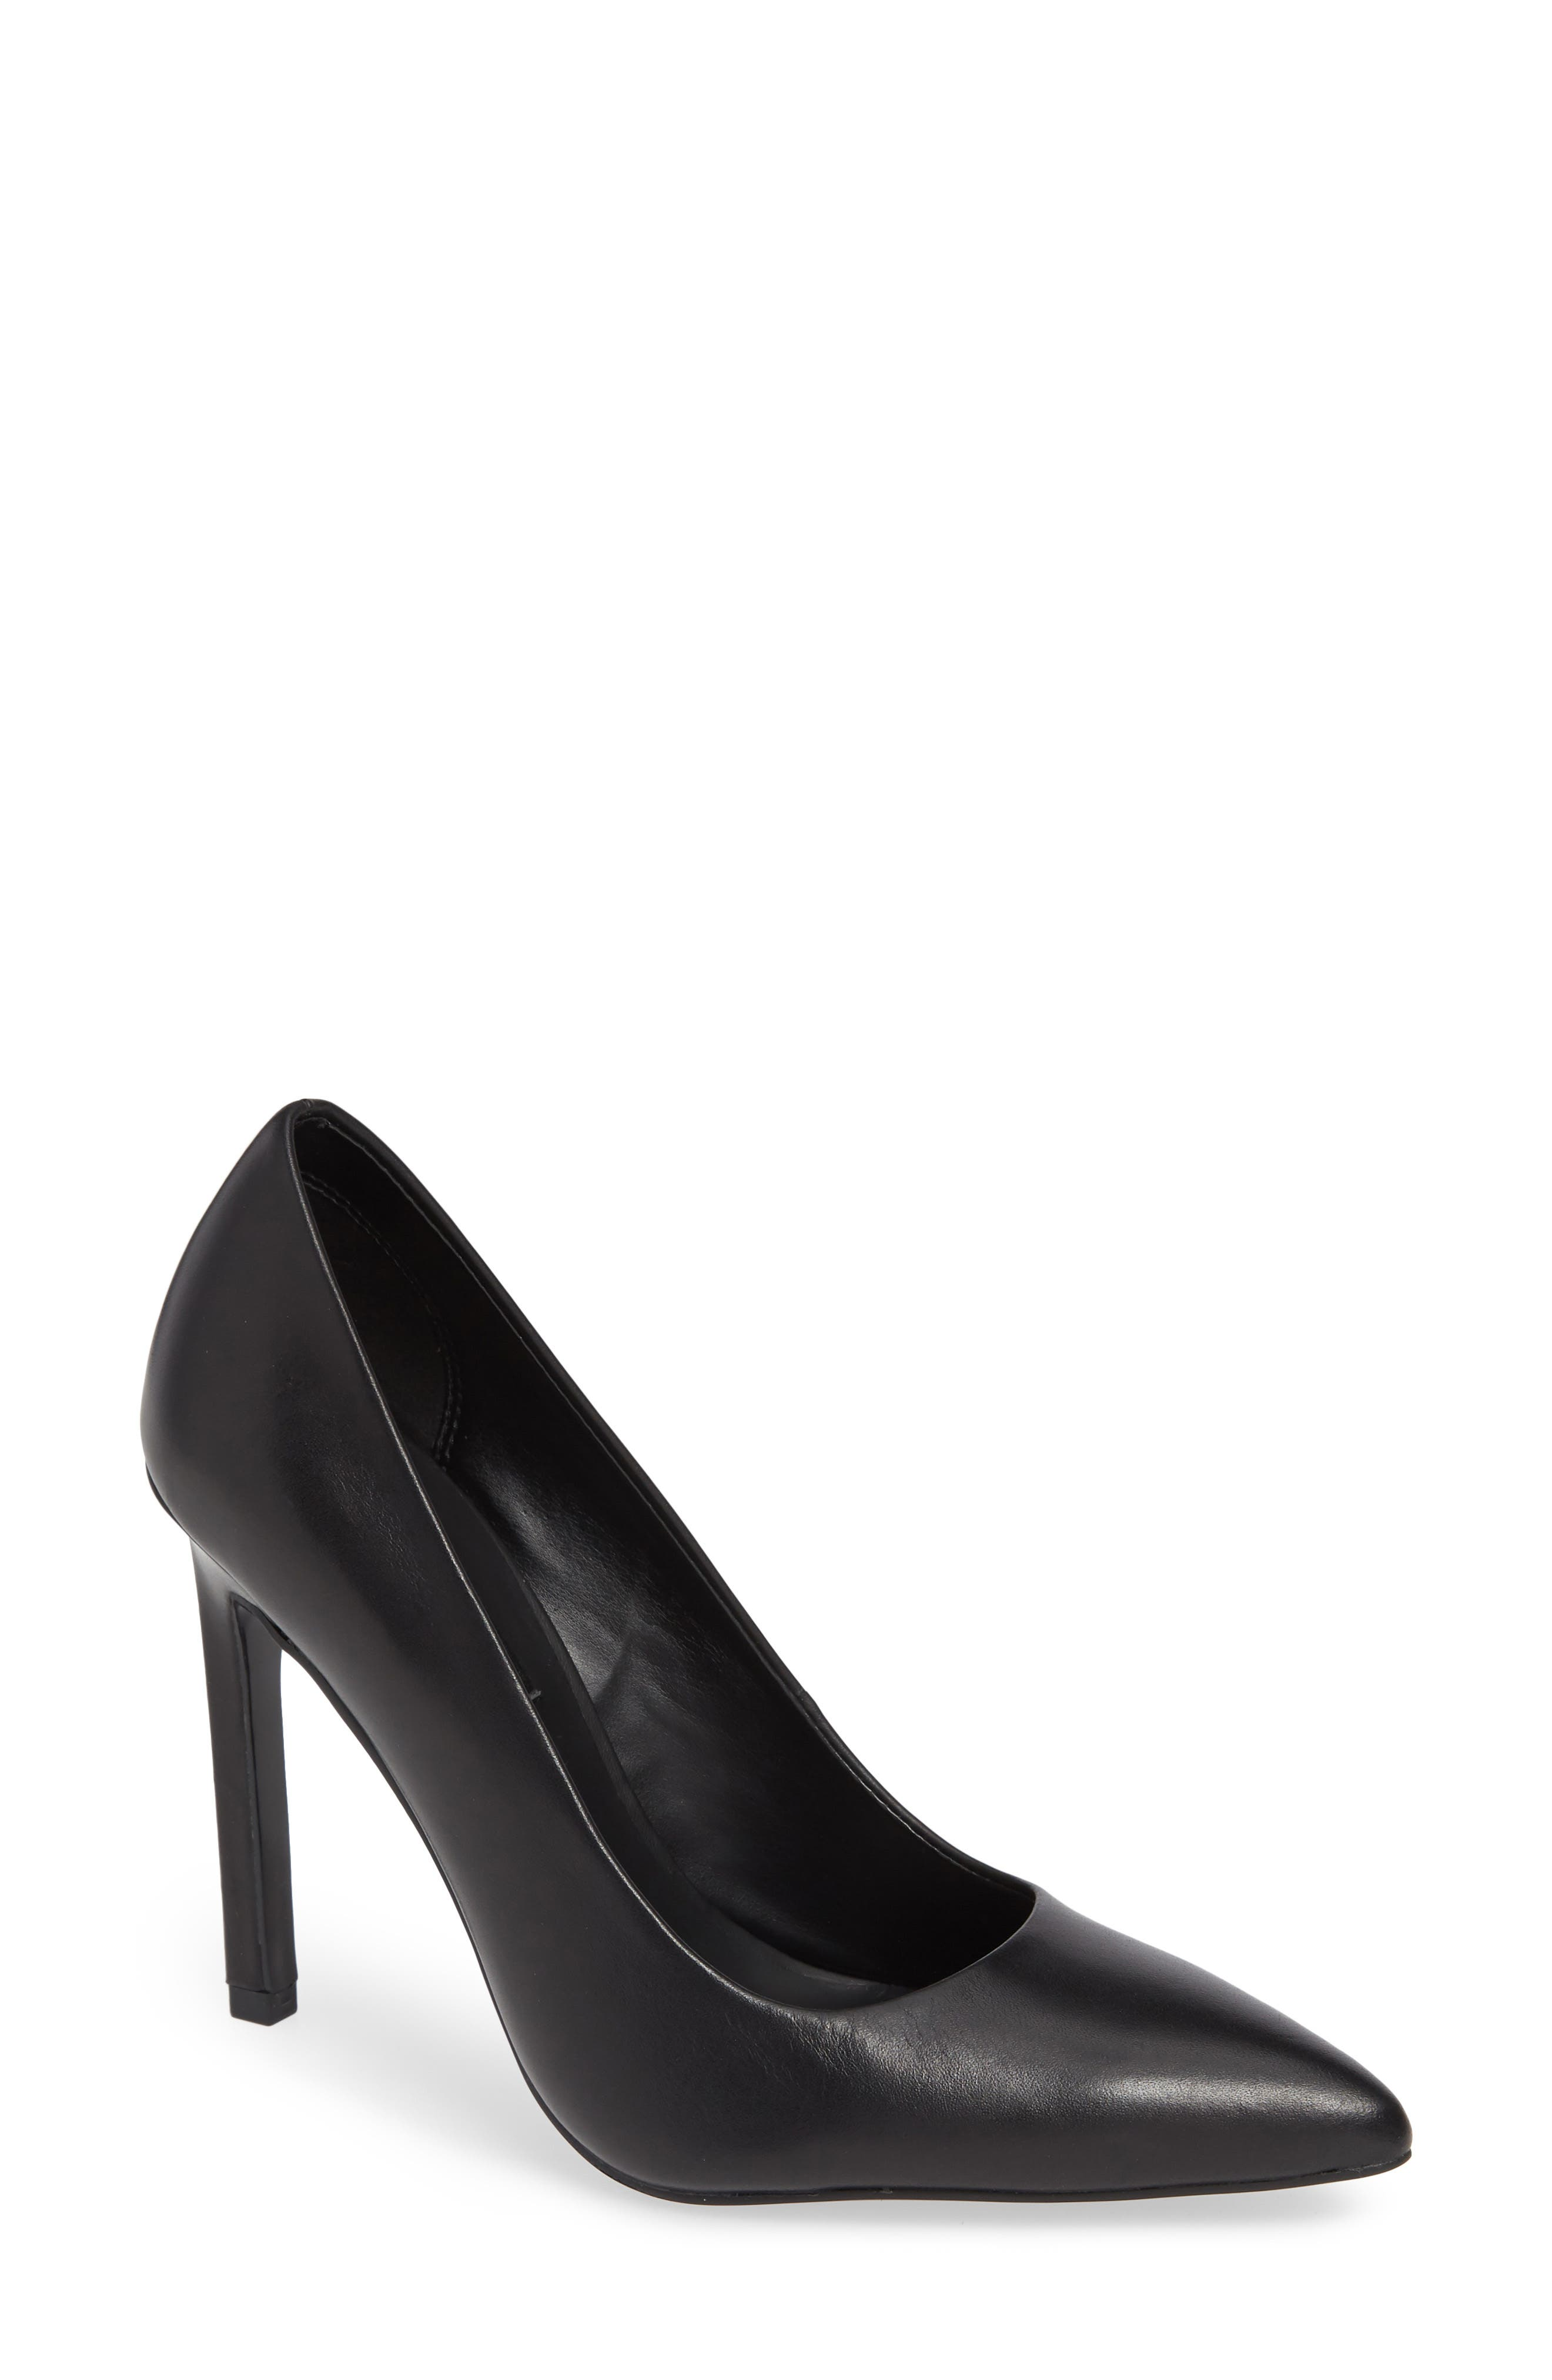 Paige Pointed Toe Pump,                         Main,                         color, BLACK LEATHER